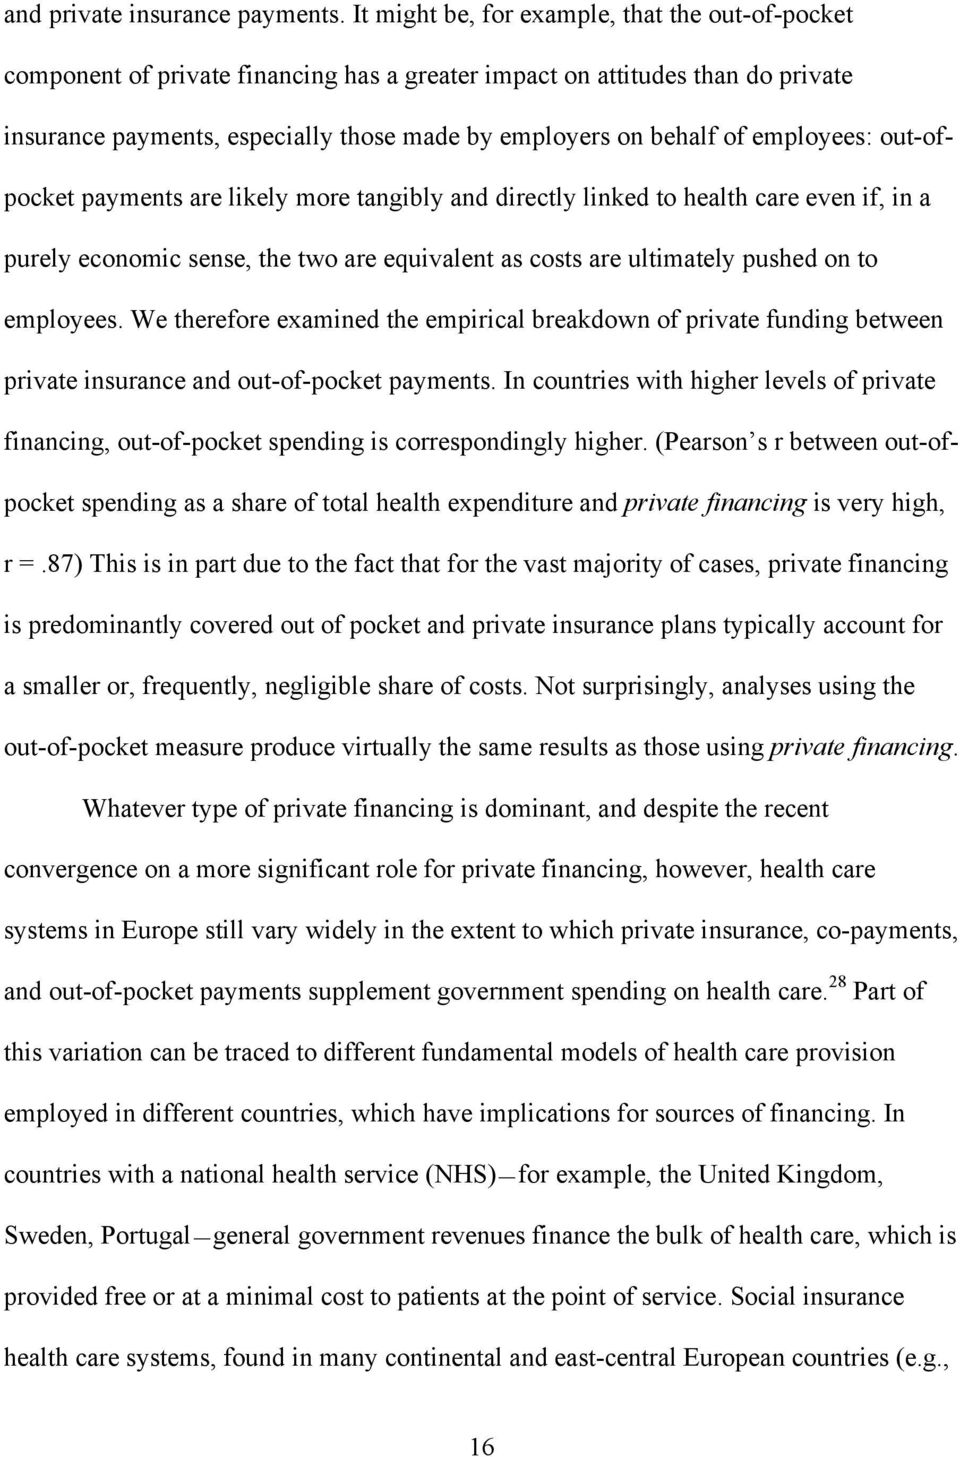 employees: out-ofpocket payments are likely more tangibly and directly linked to health care even if, in a purely economic sense, the two are equivalent as costs are ultimately pushed on to employees.